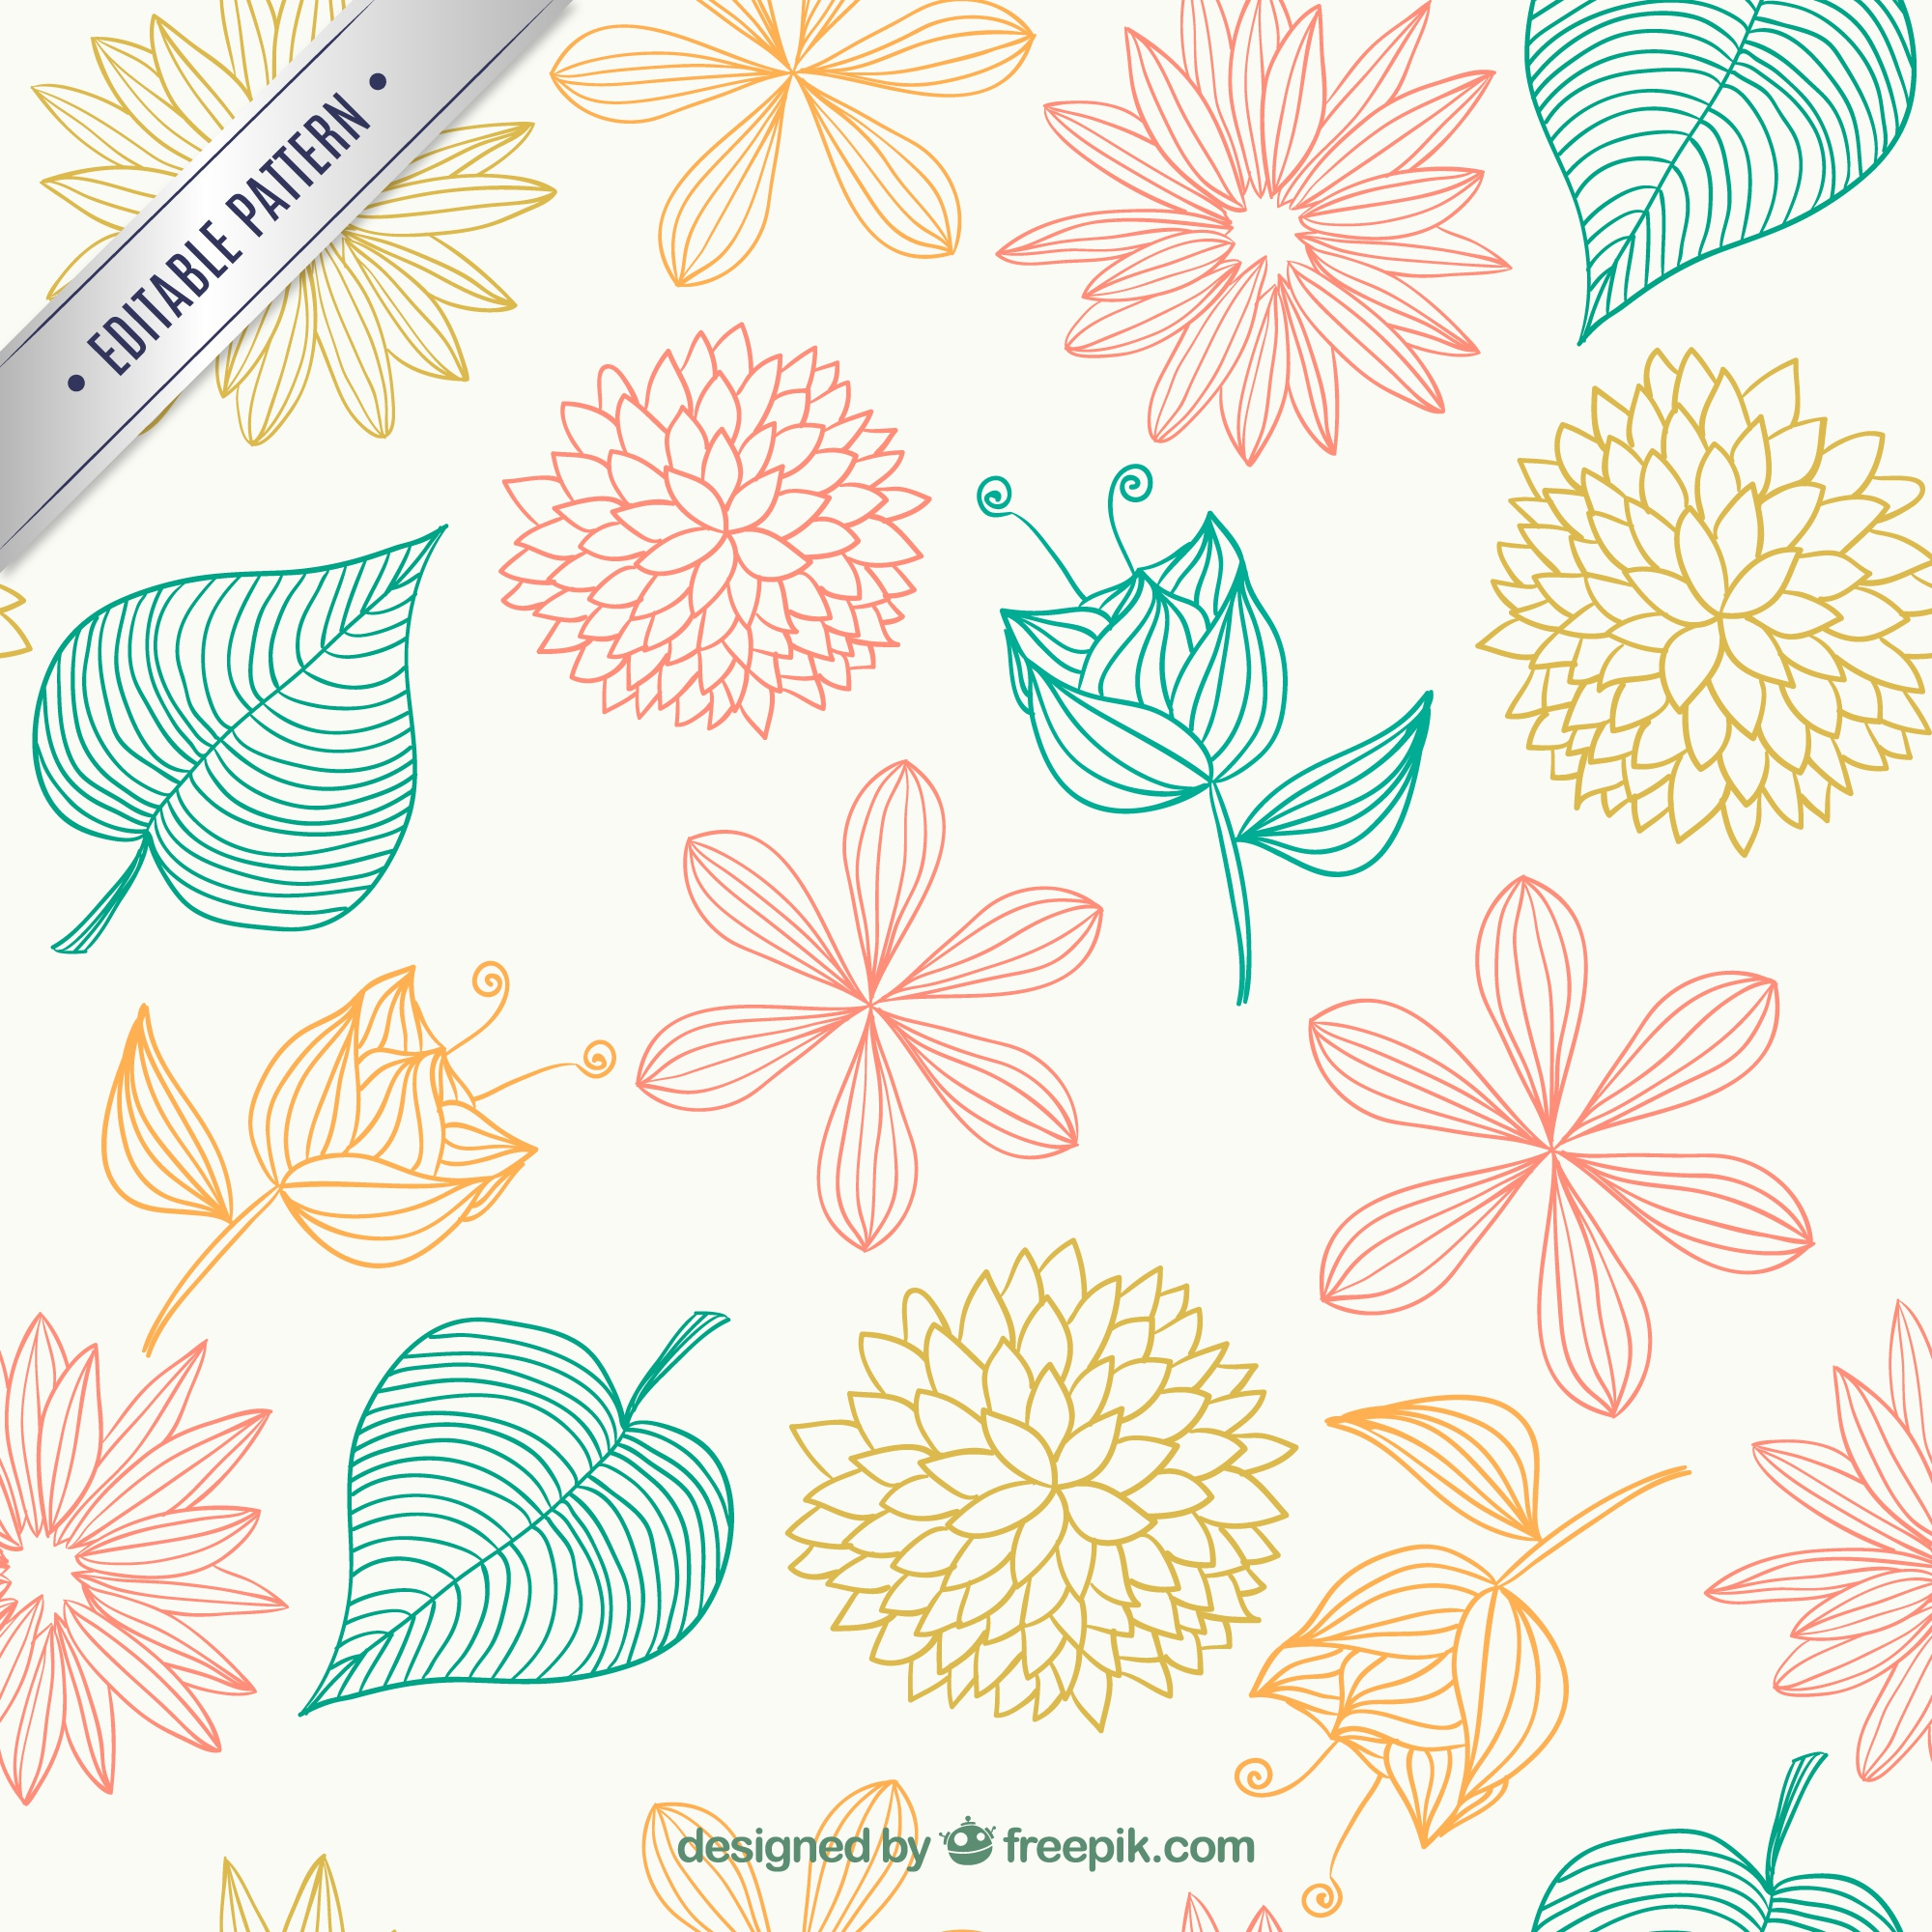 Floral pattern in sketchy style